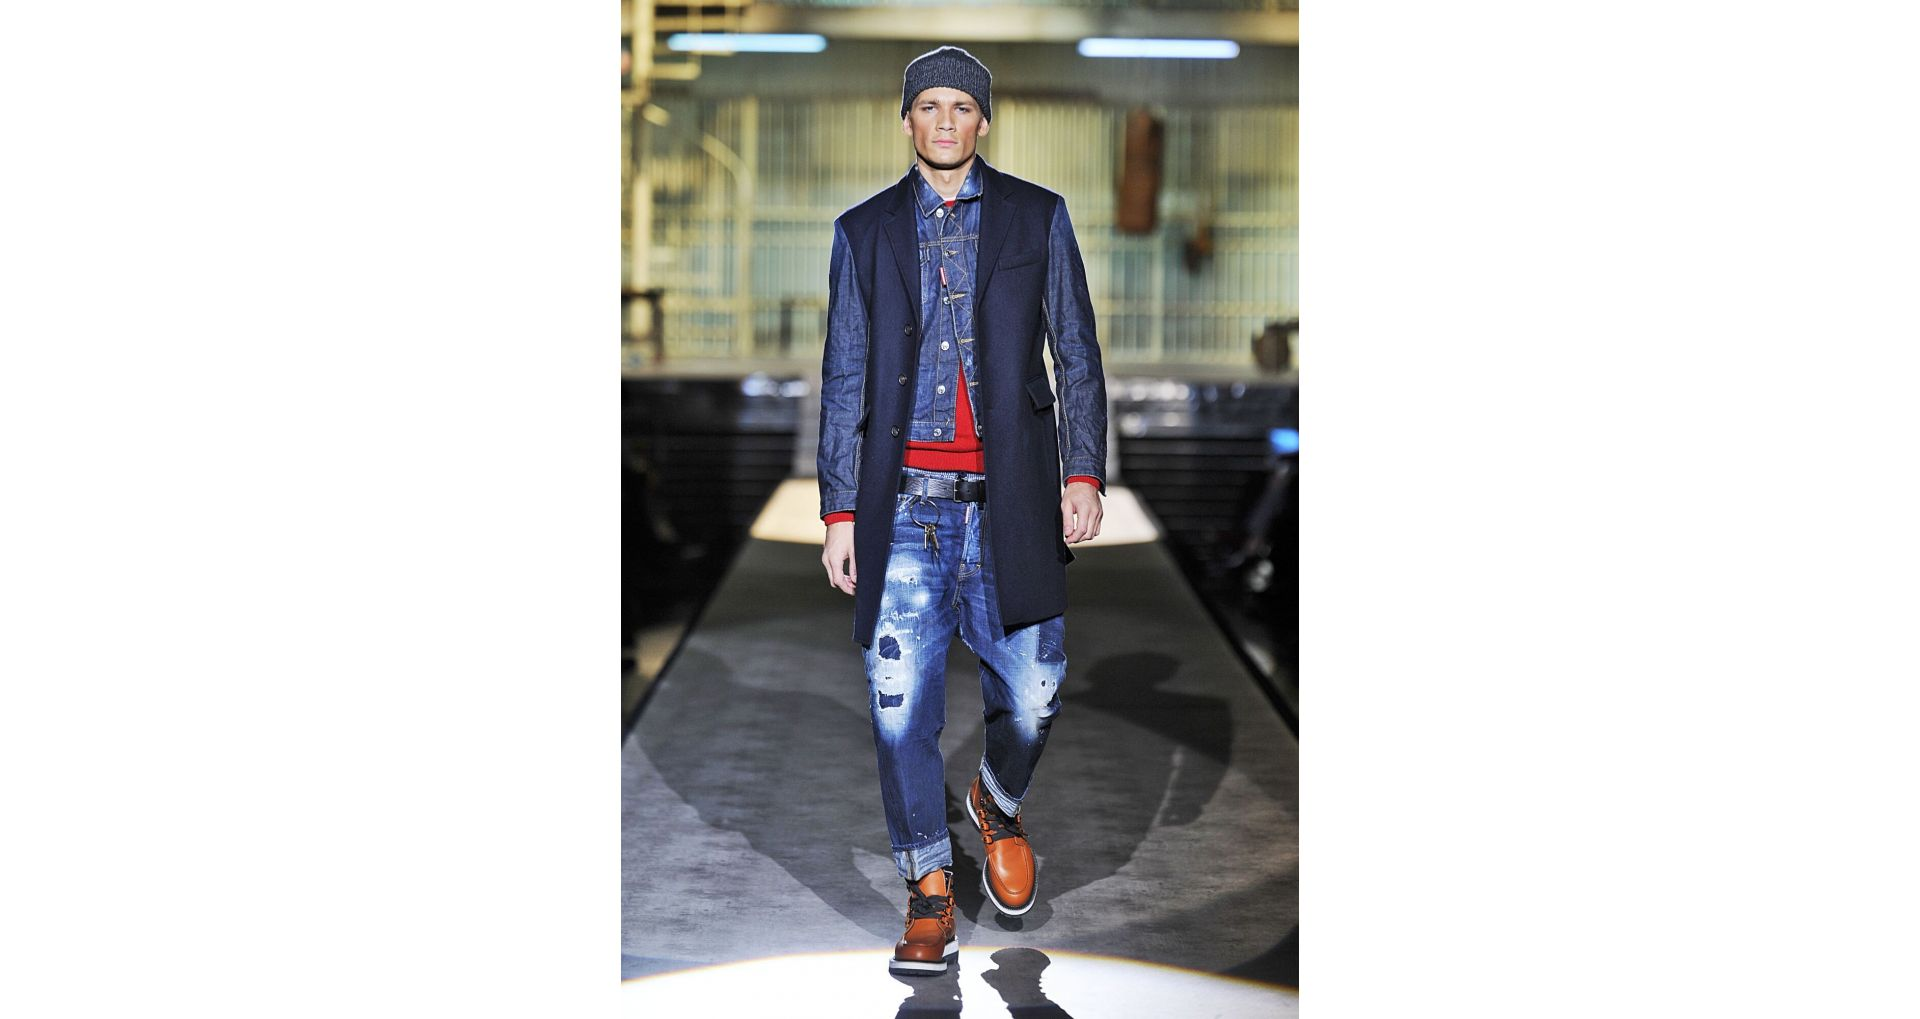 New men's jeans collections from the big fashion houses